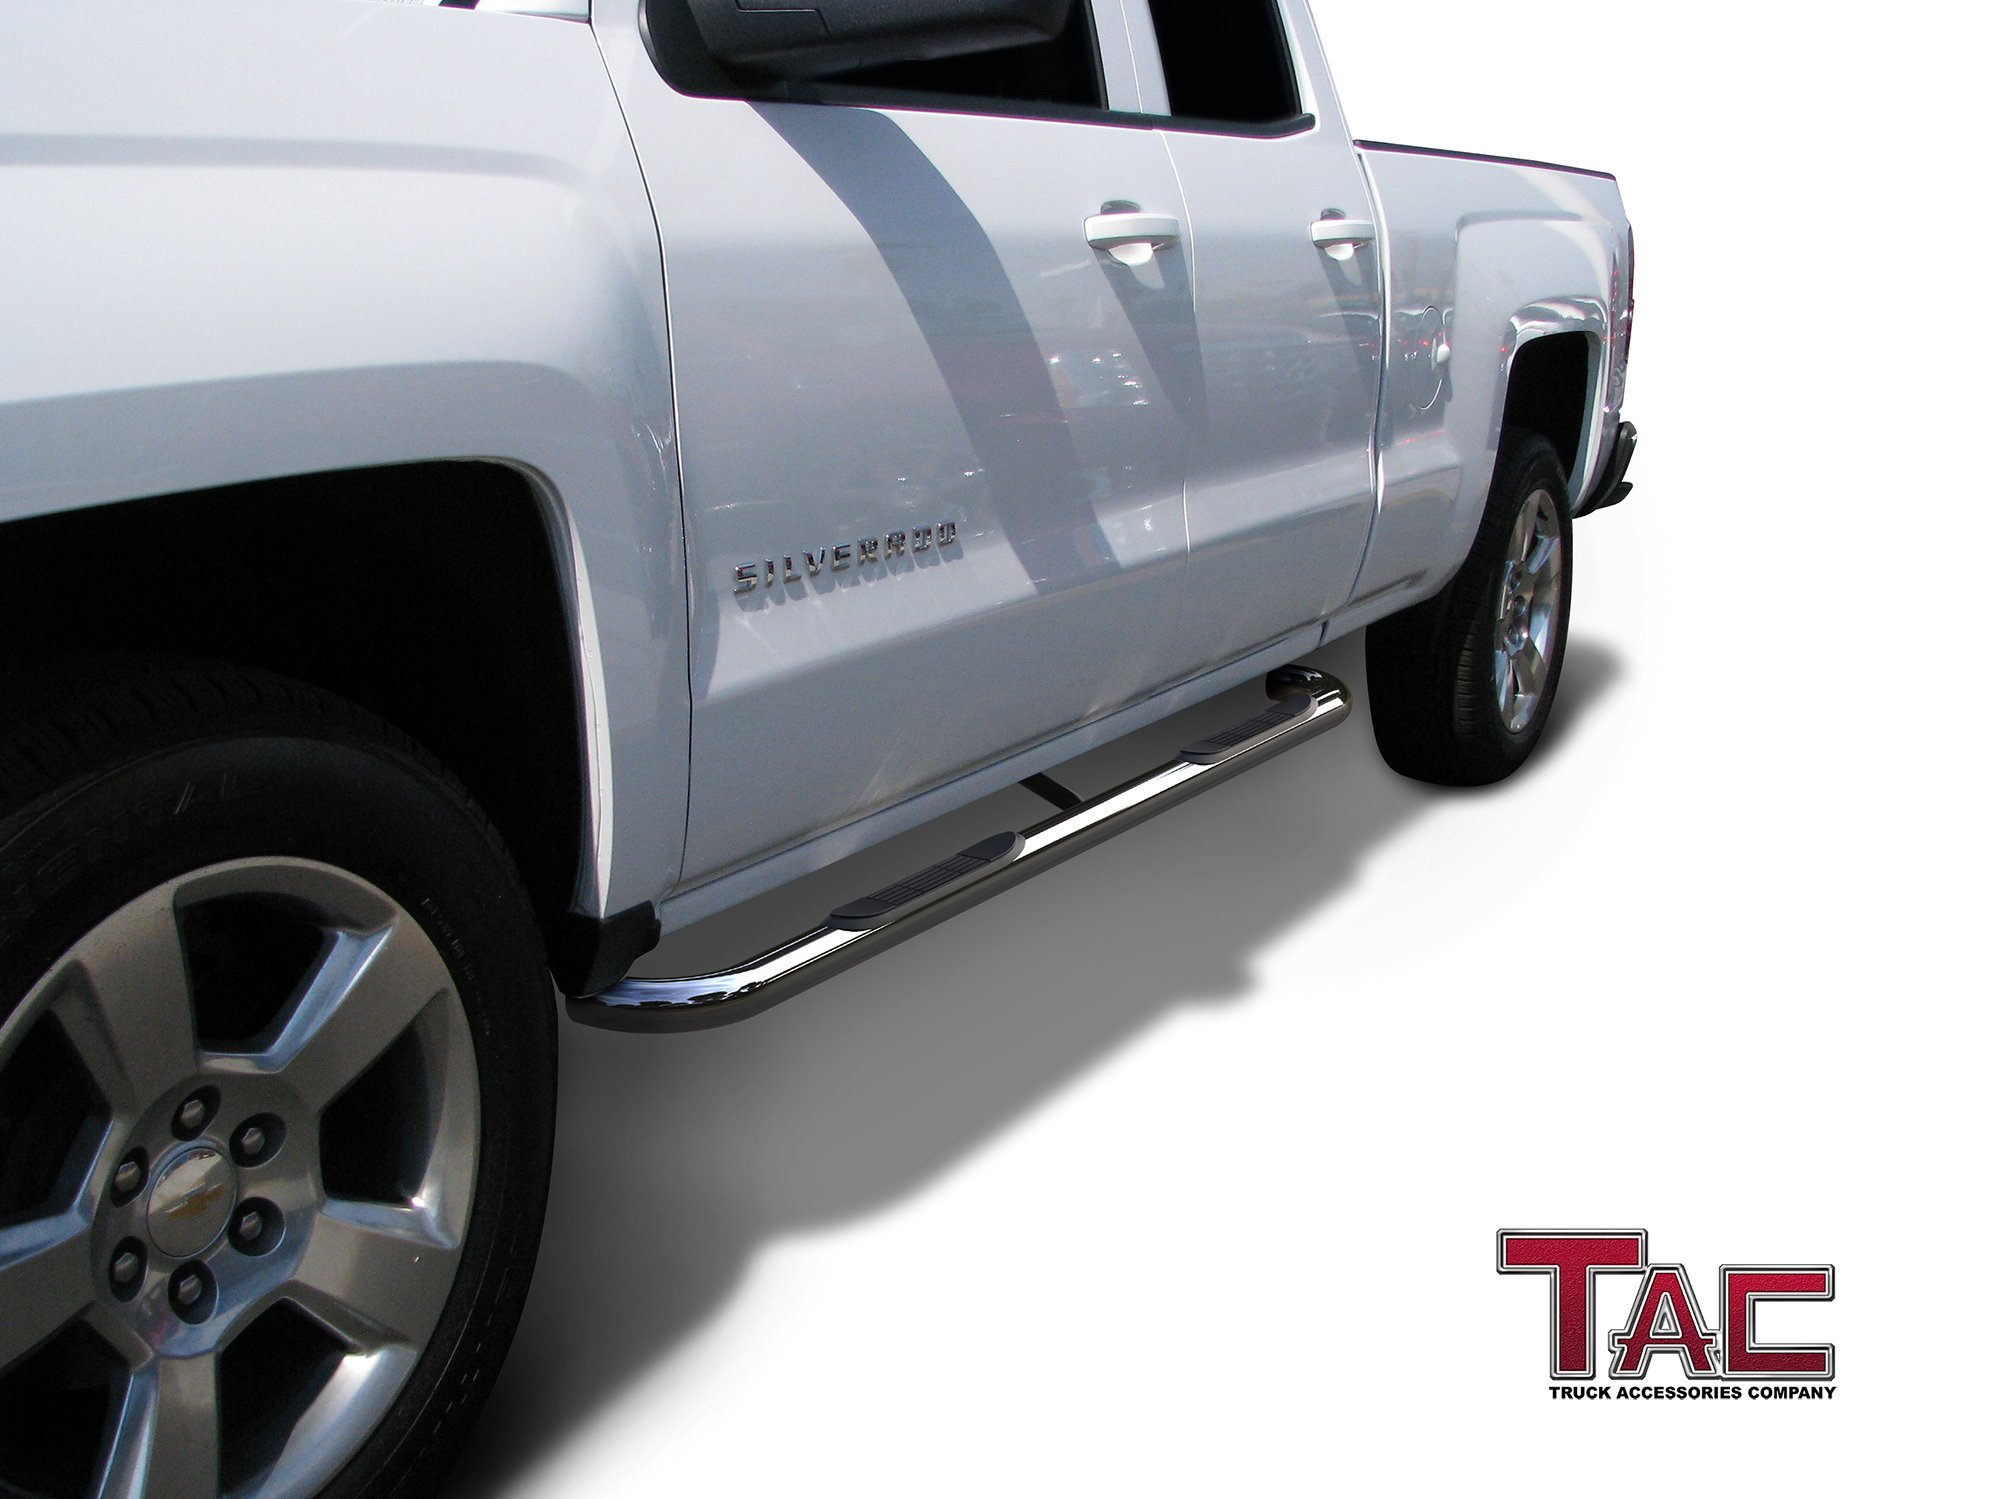 TAC Side Steps Fit Chevy Silverado/GMC Sierra 1999-2018 1500 & 1999-2019 2500/3500 Extended/Double Cab (Excl. C/K Classic) 3'' Stainless Steel Side Bars Nerf Bars Step Rails Running Boards 2 Pieces by TAC TRUCK ACCESSORIES COMPANY (Image #2)